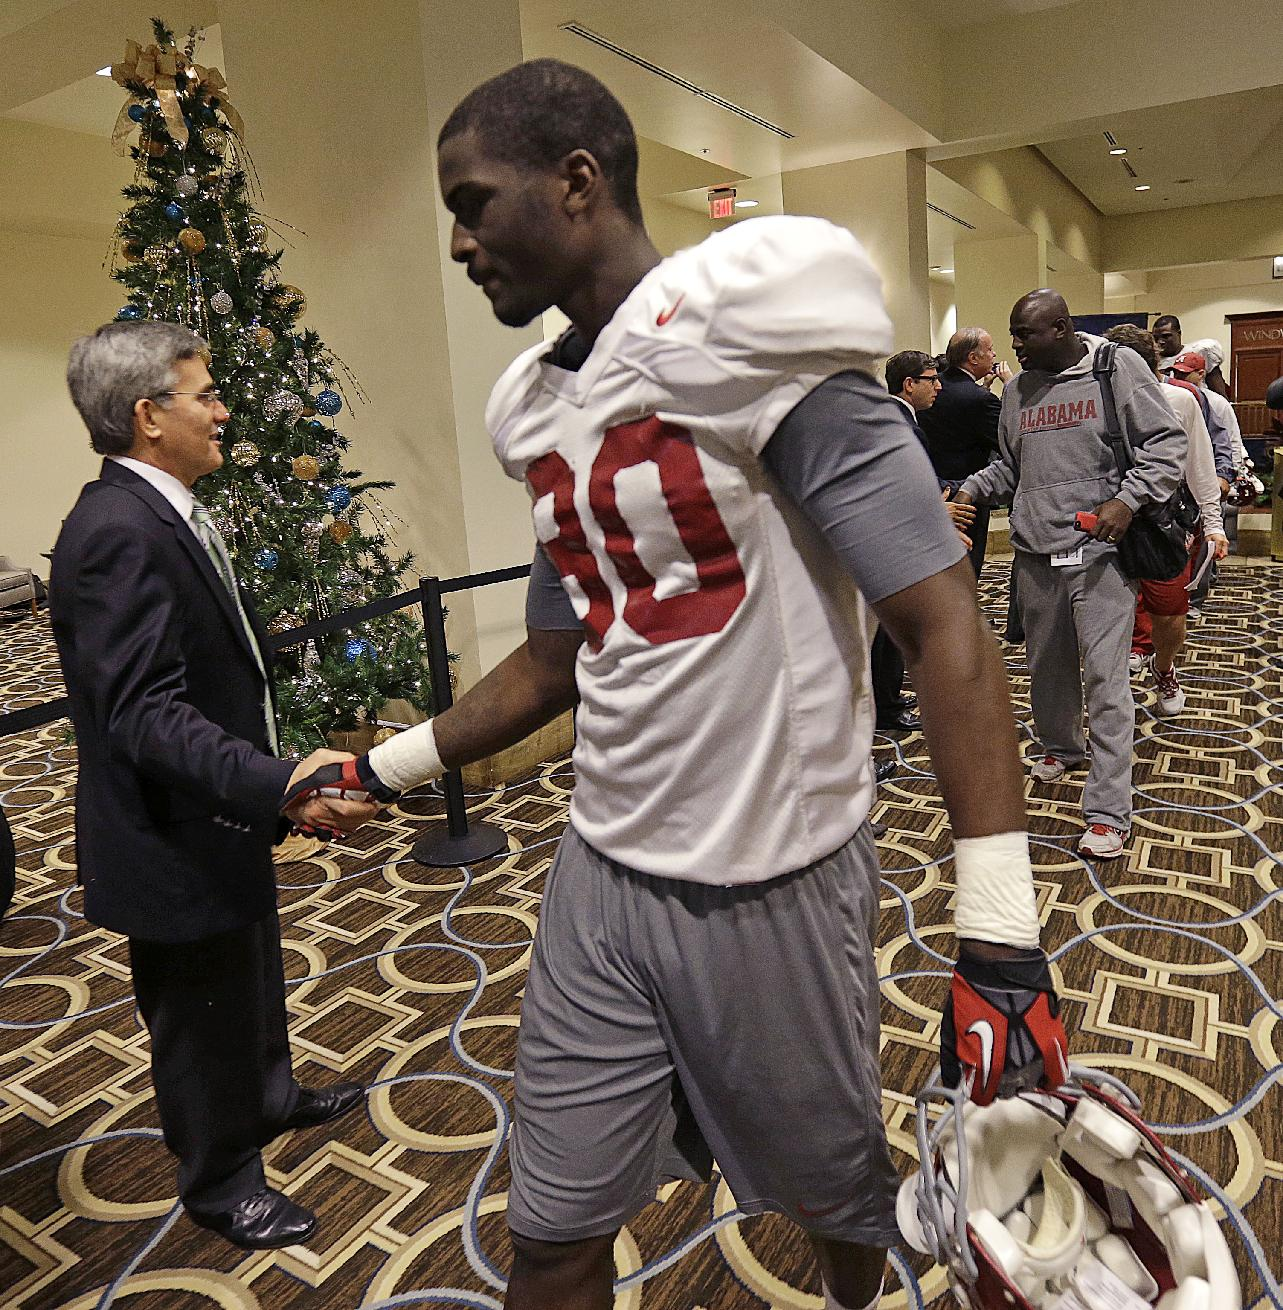 Alabama wide receiver Raheem Falcon (80) is greeted by Sugar Bowl Committee members Alabama players arrive at their hotel after their first team practice in New Orleans, Friday, Dec. 27, 2013. Alabama will play Oklahoma in the Sugar Bowl NCAA college football game on Jan. 2